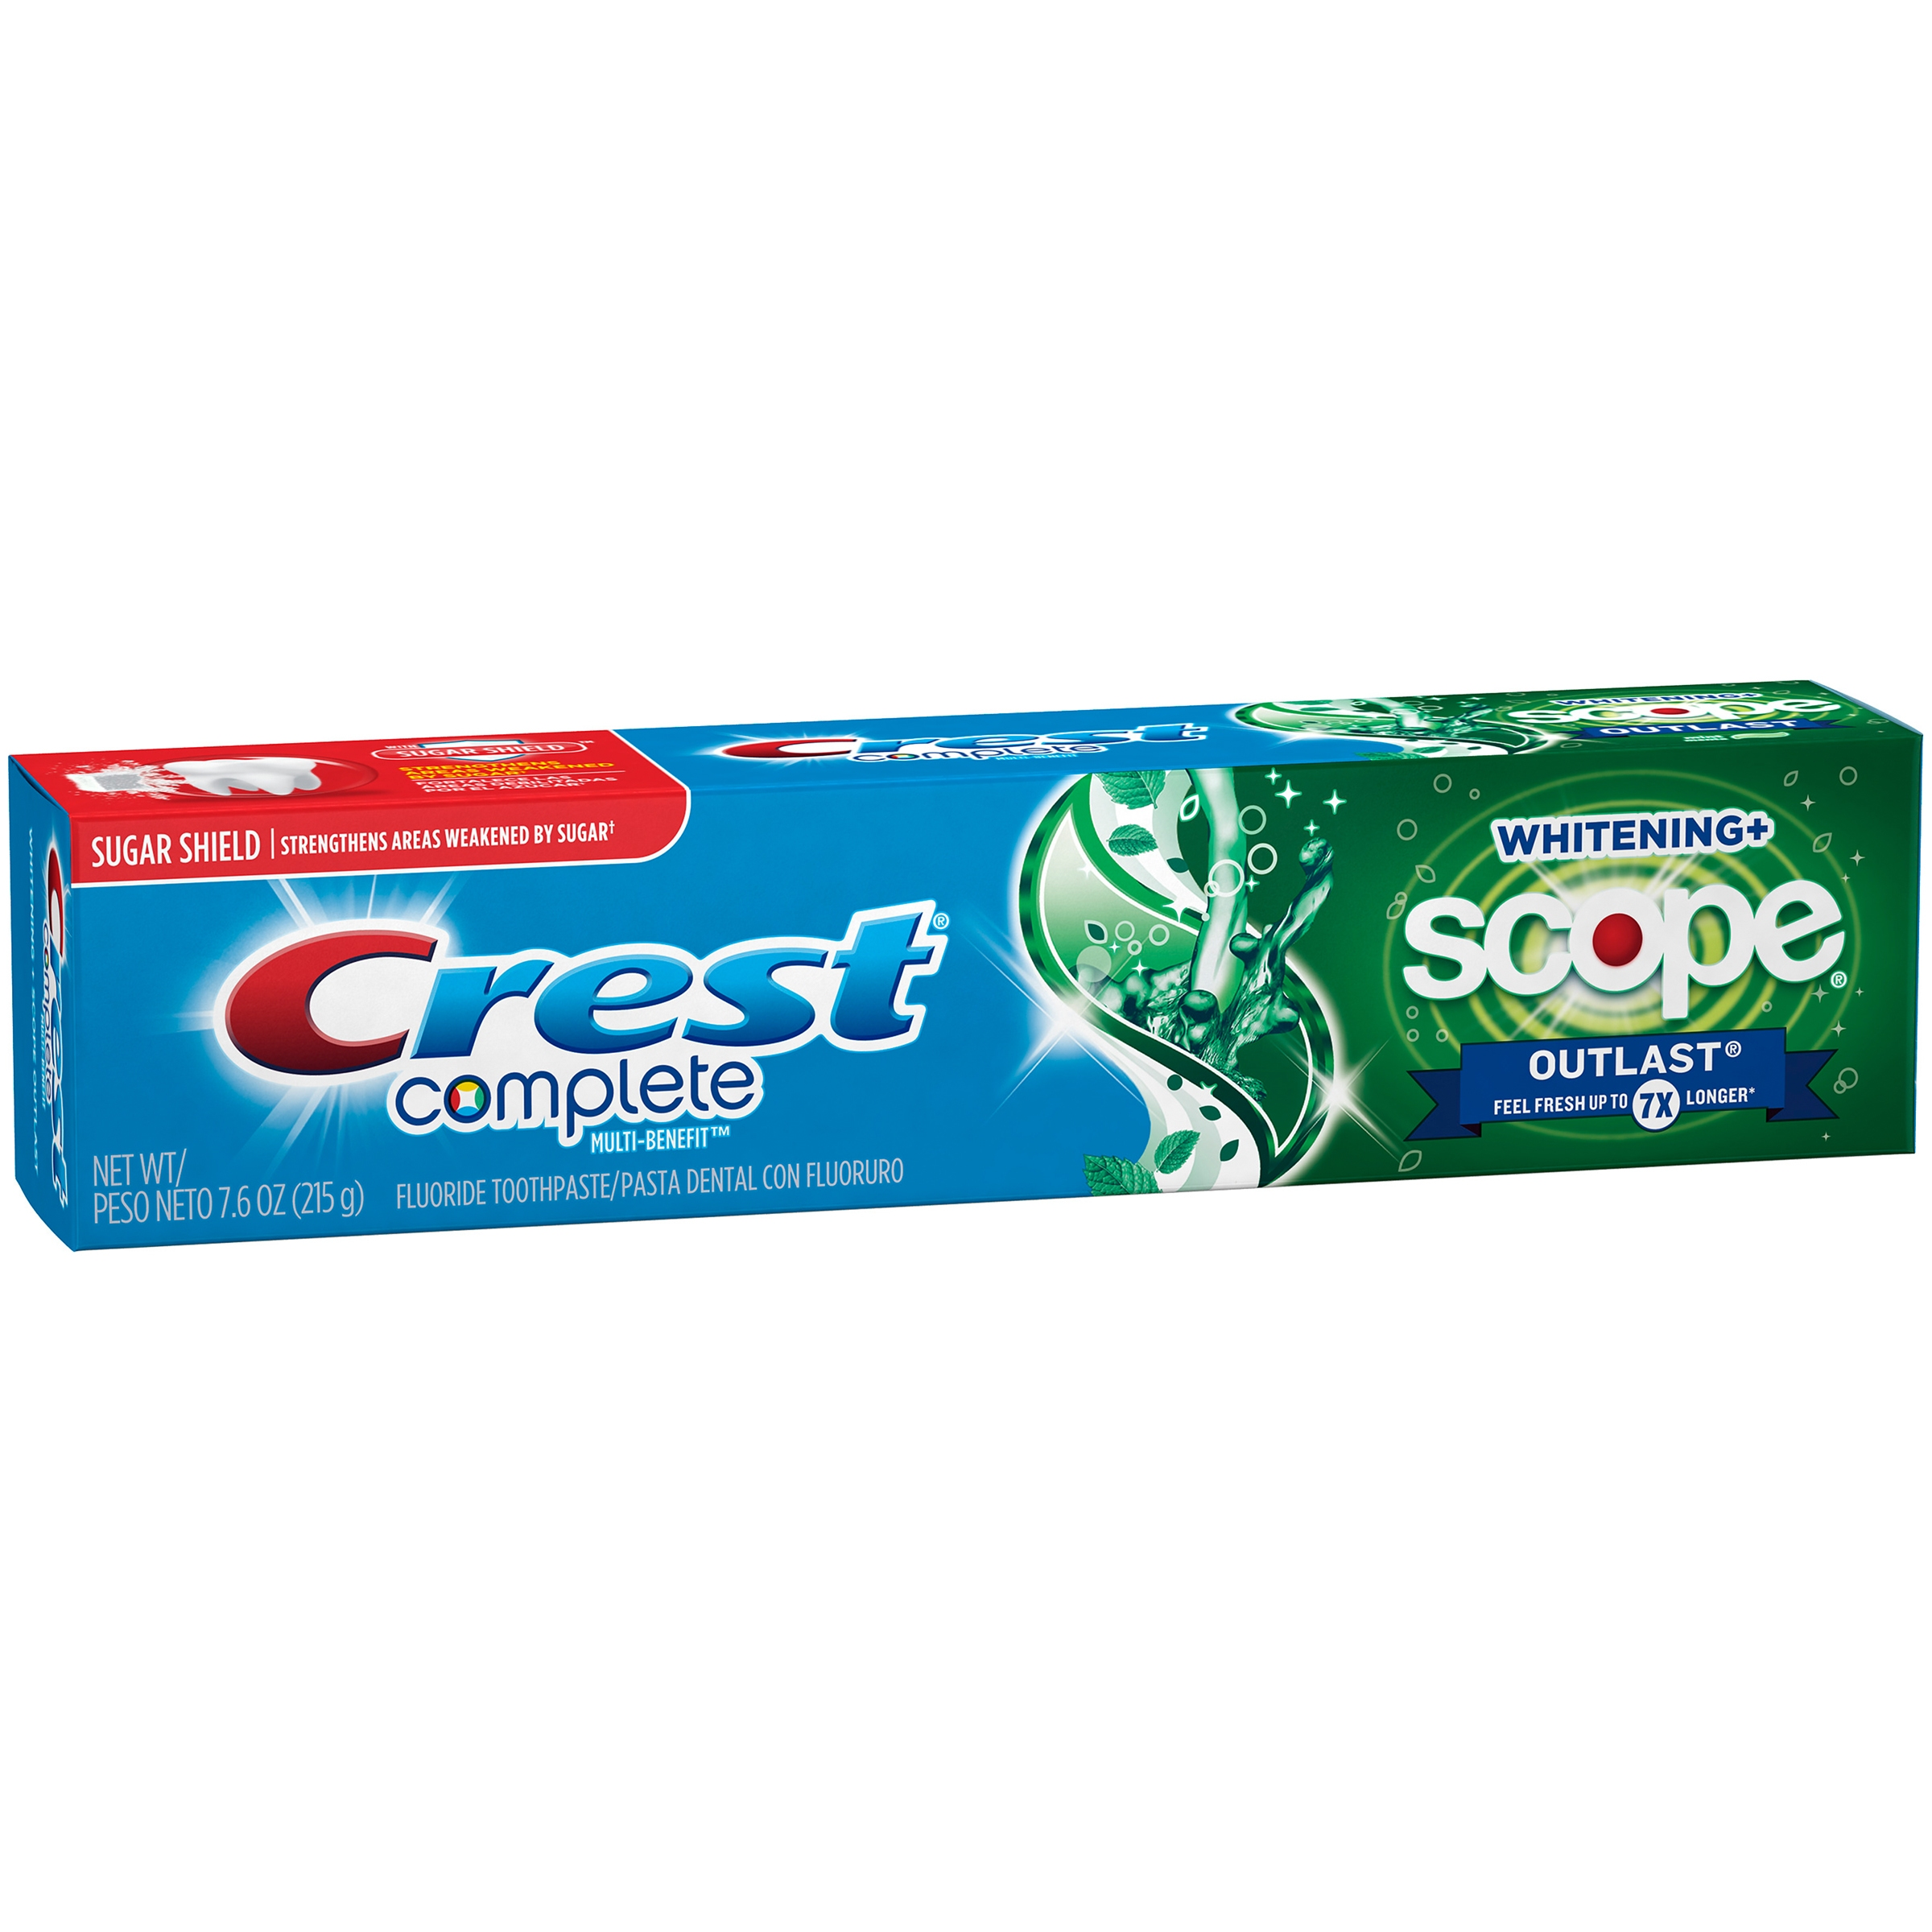 Crest Complete Whitening + Scope Outlast Mint Toothpaste, 7.6 Oz